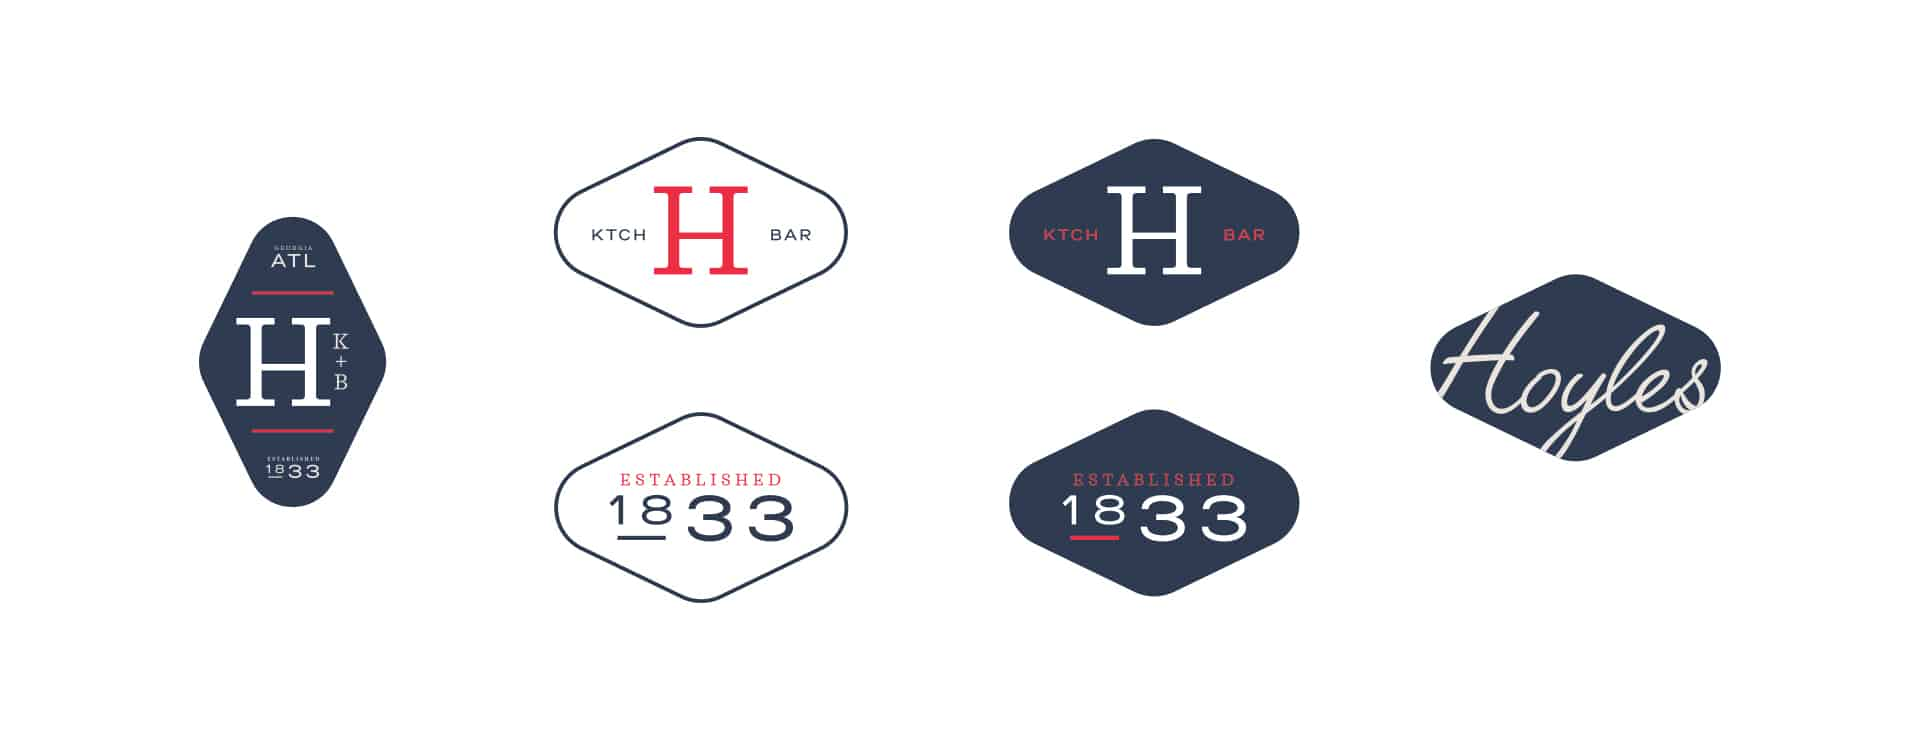 Hoyle's Kitchen & Bar restaurant rebranding and design secondary marks and logos